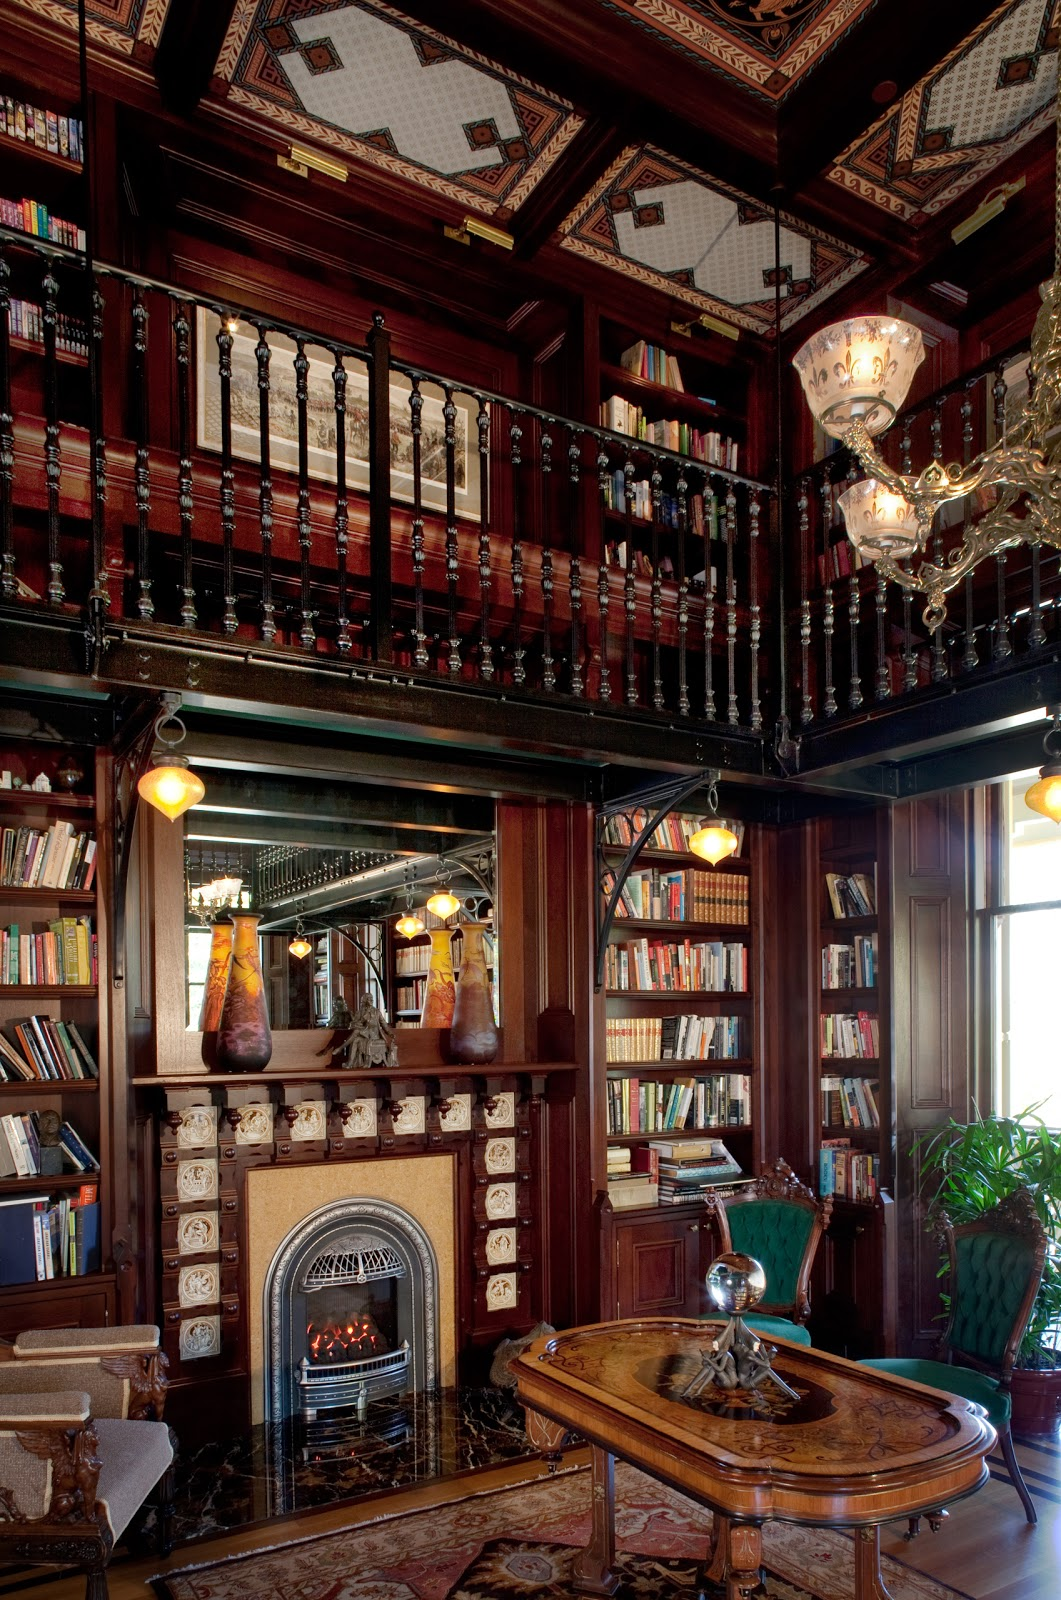 Home Library Room: Rynerson OBrien Architecture, Inc.: The McDonald Mansion's